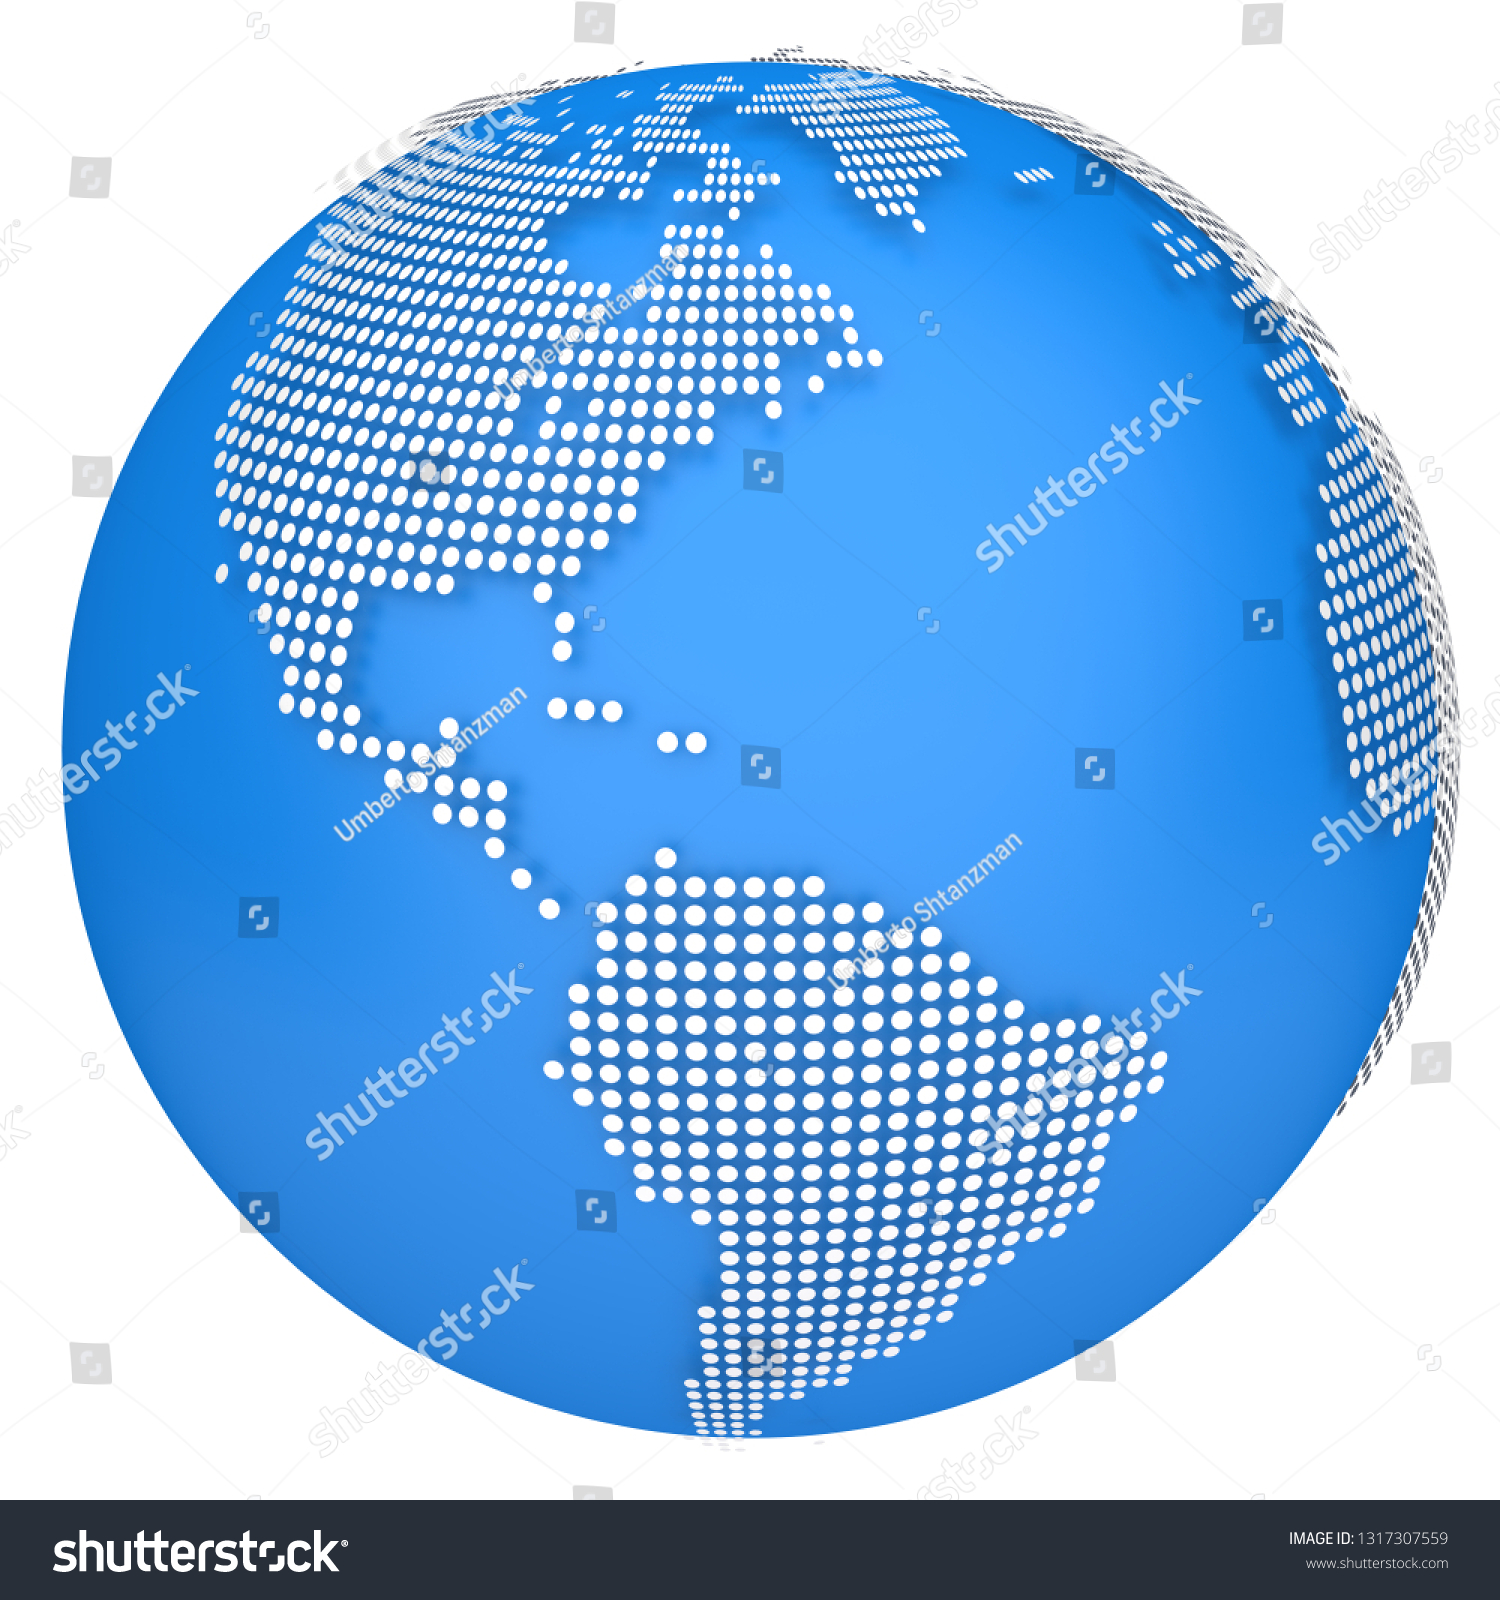 hight resolution of earth map globe 3d dotted model side of north and south america 3d illustration